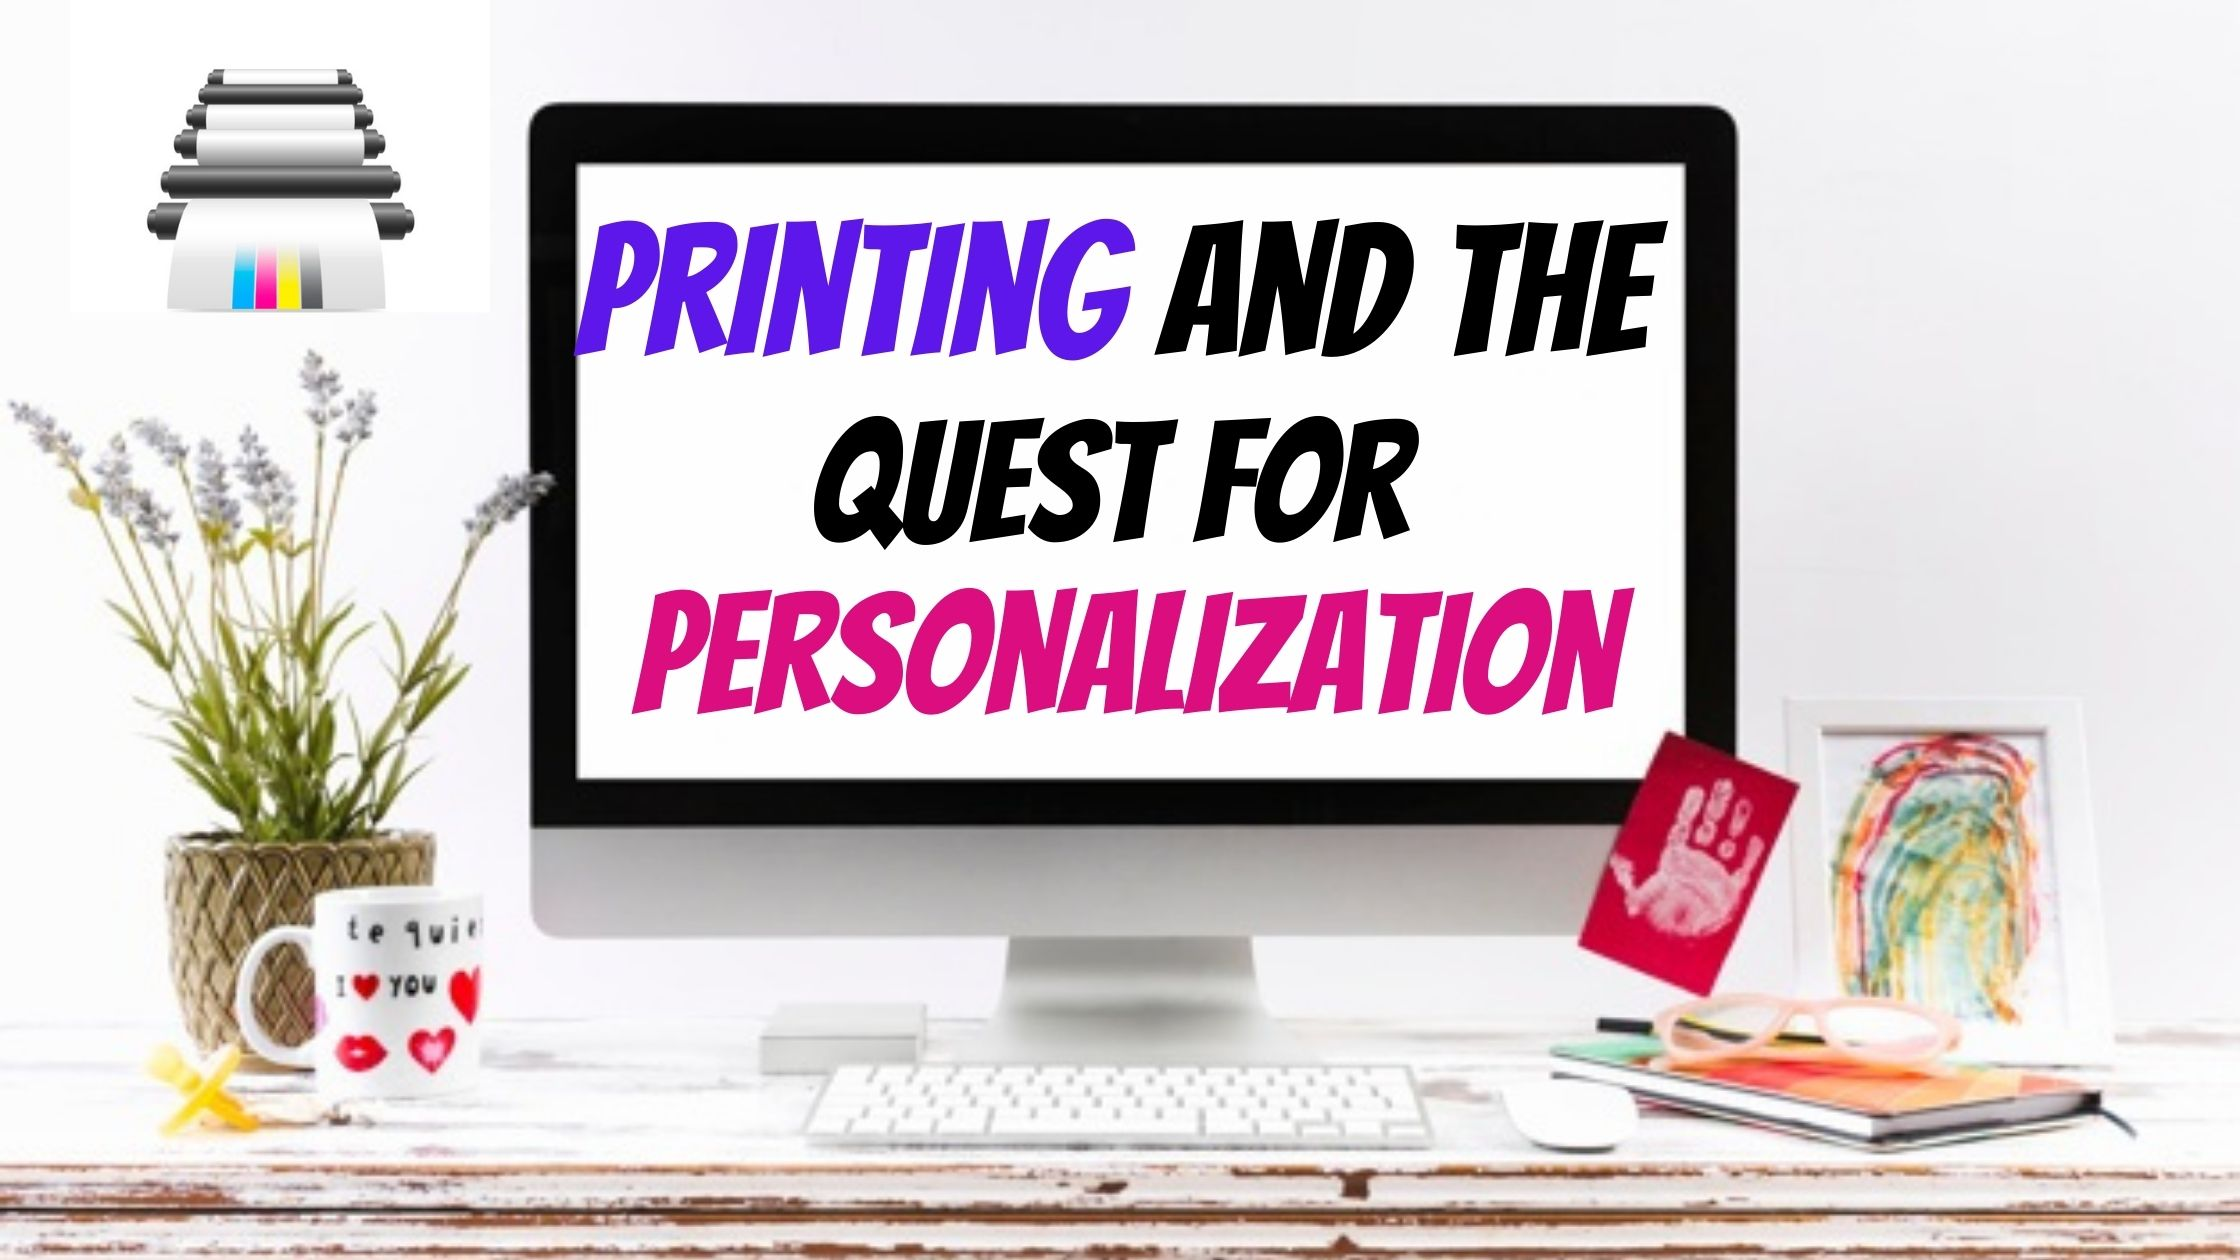 Printing and the Quest for Personalization